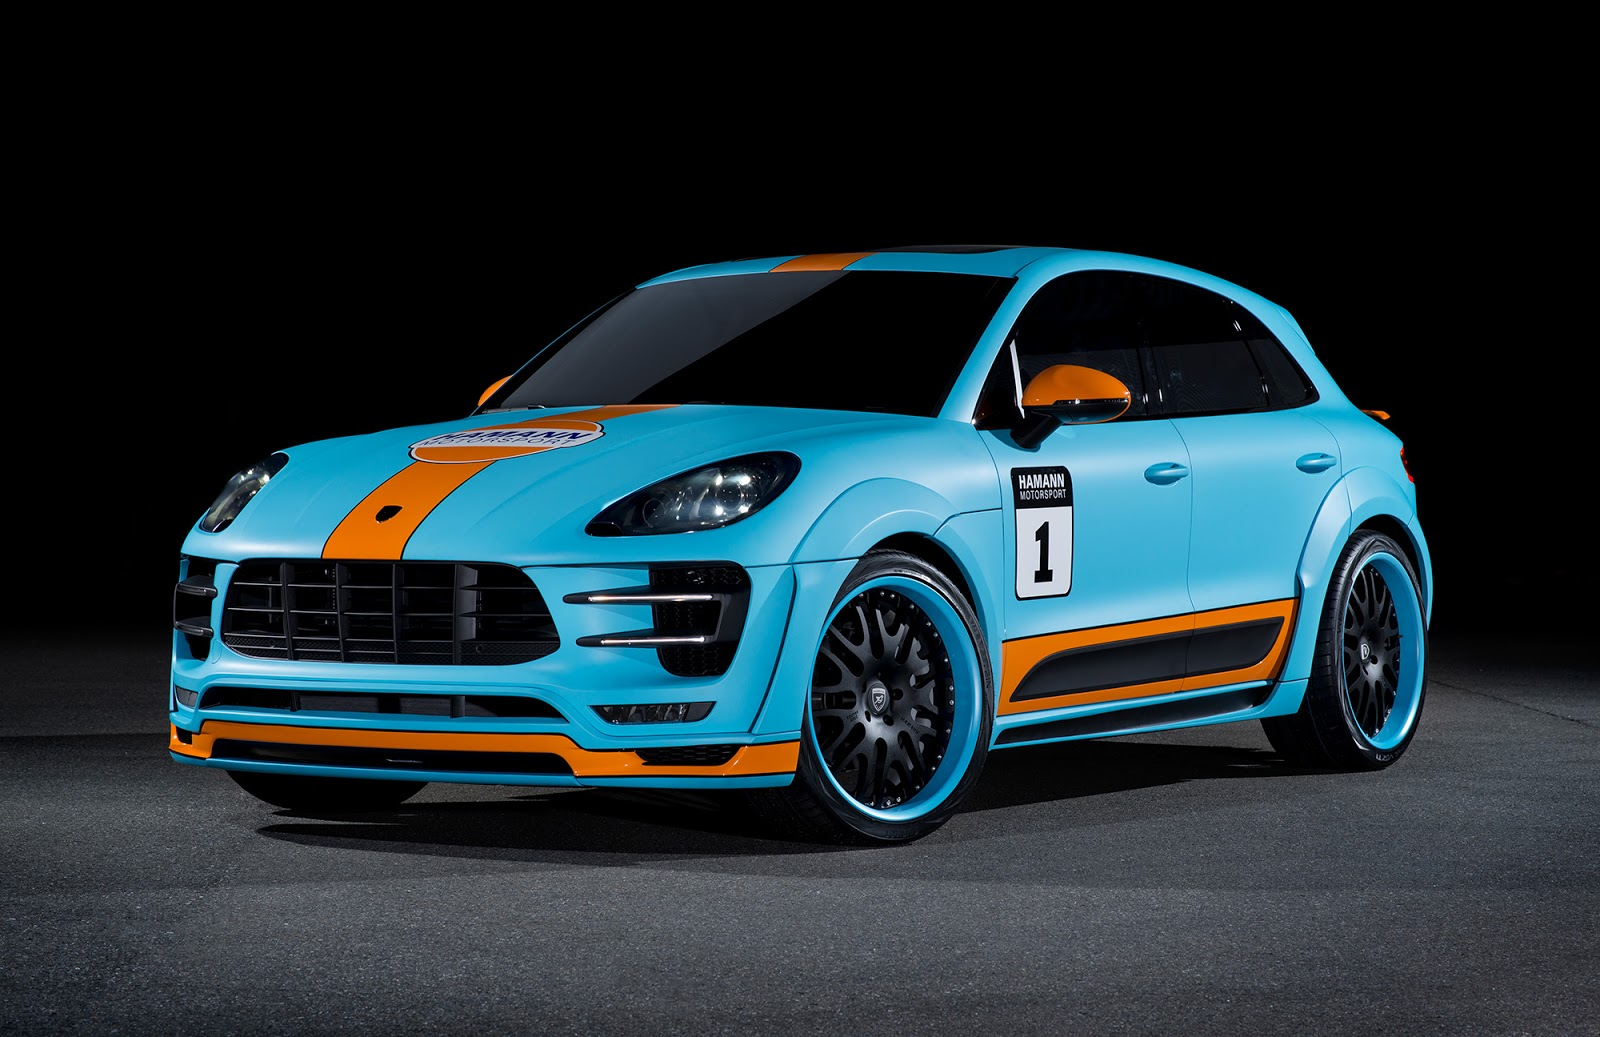 hamann 39 s porsche macan s diesel just don 39 t call it gulf oil livered carscoops. Black Bedroom Furniture Sets. Home Design Ideas